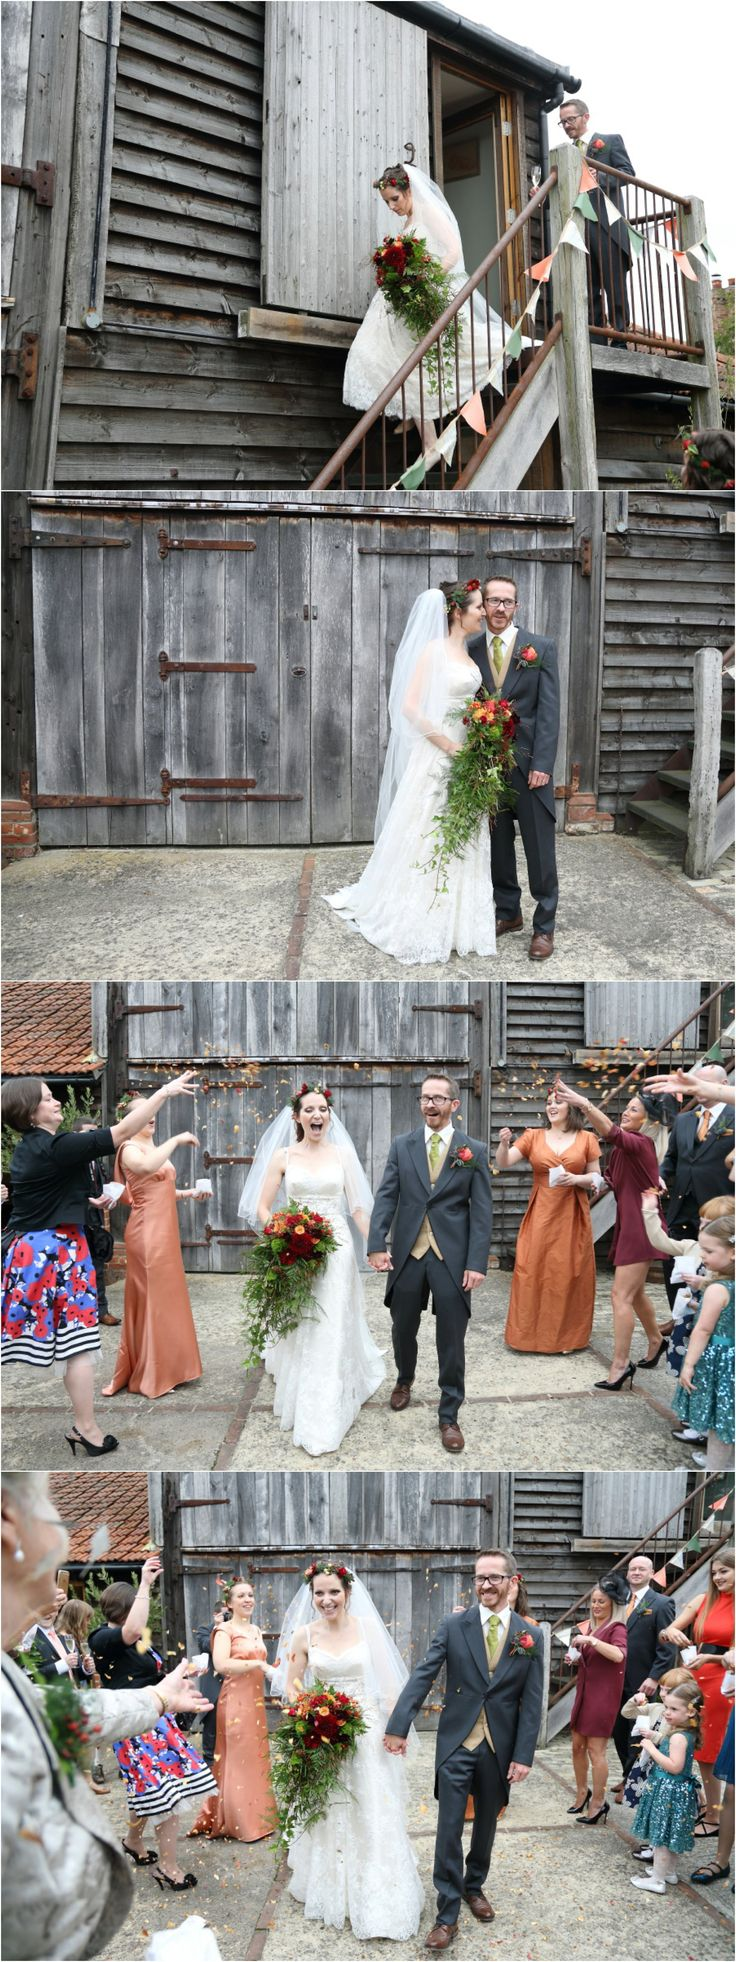 relaxed fun wedding photography and confettii shot at Moreves barn in Suffolk